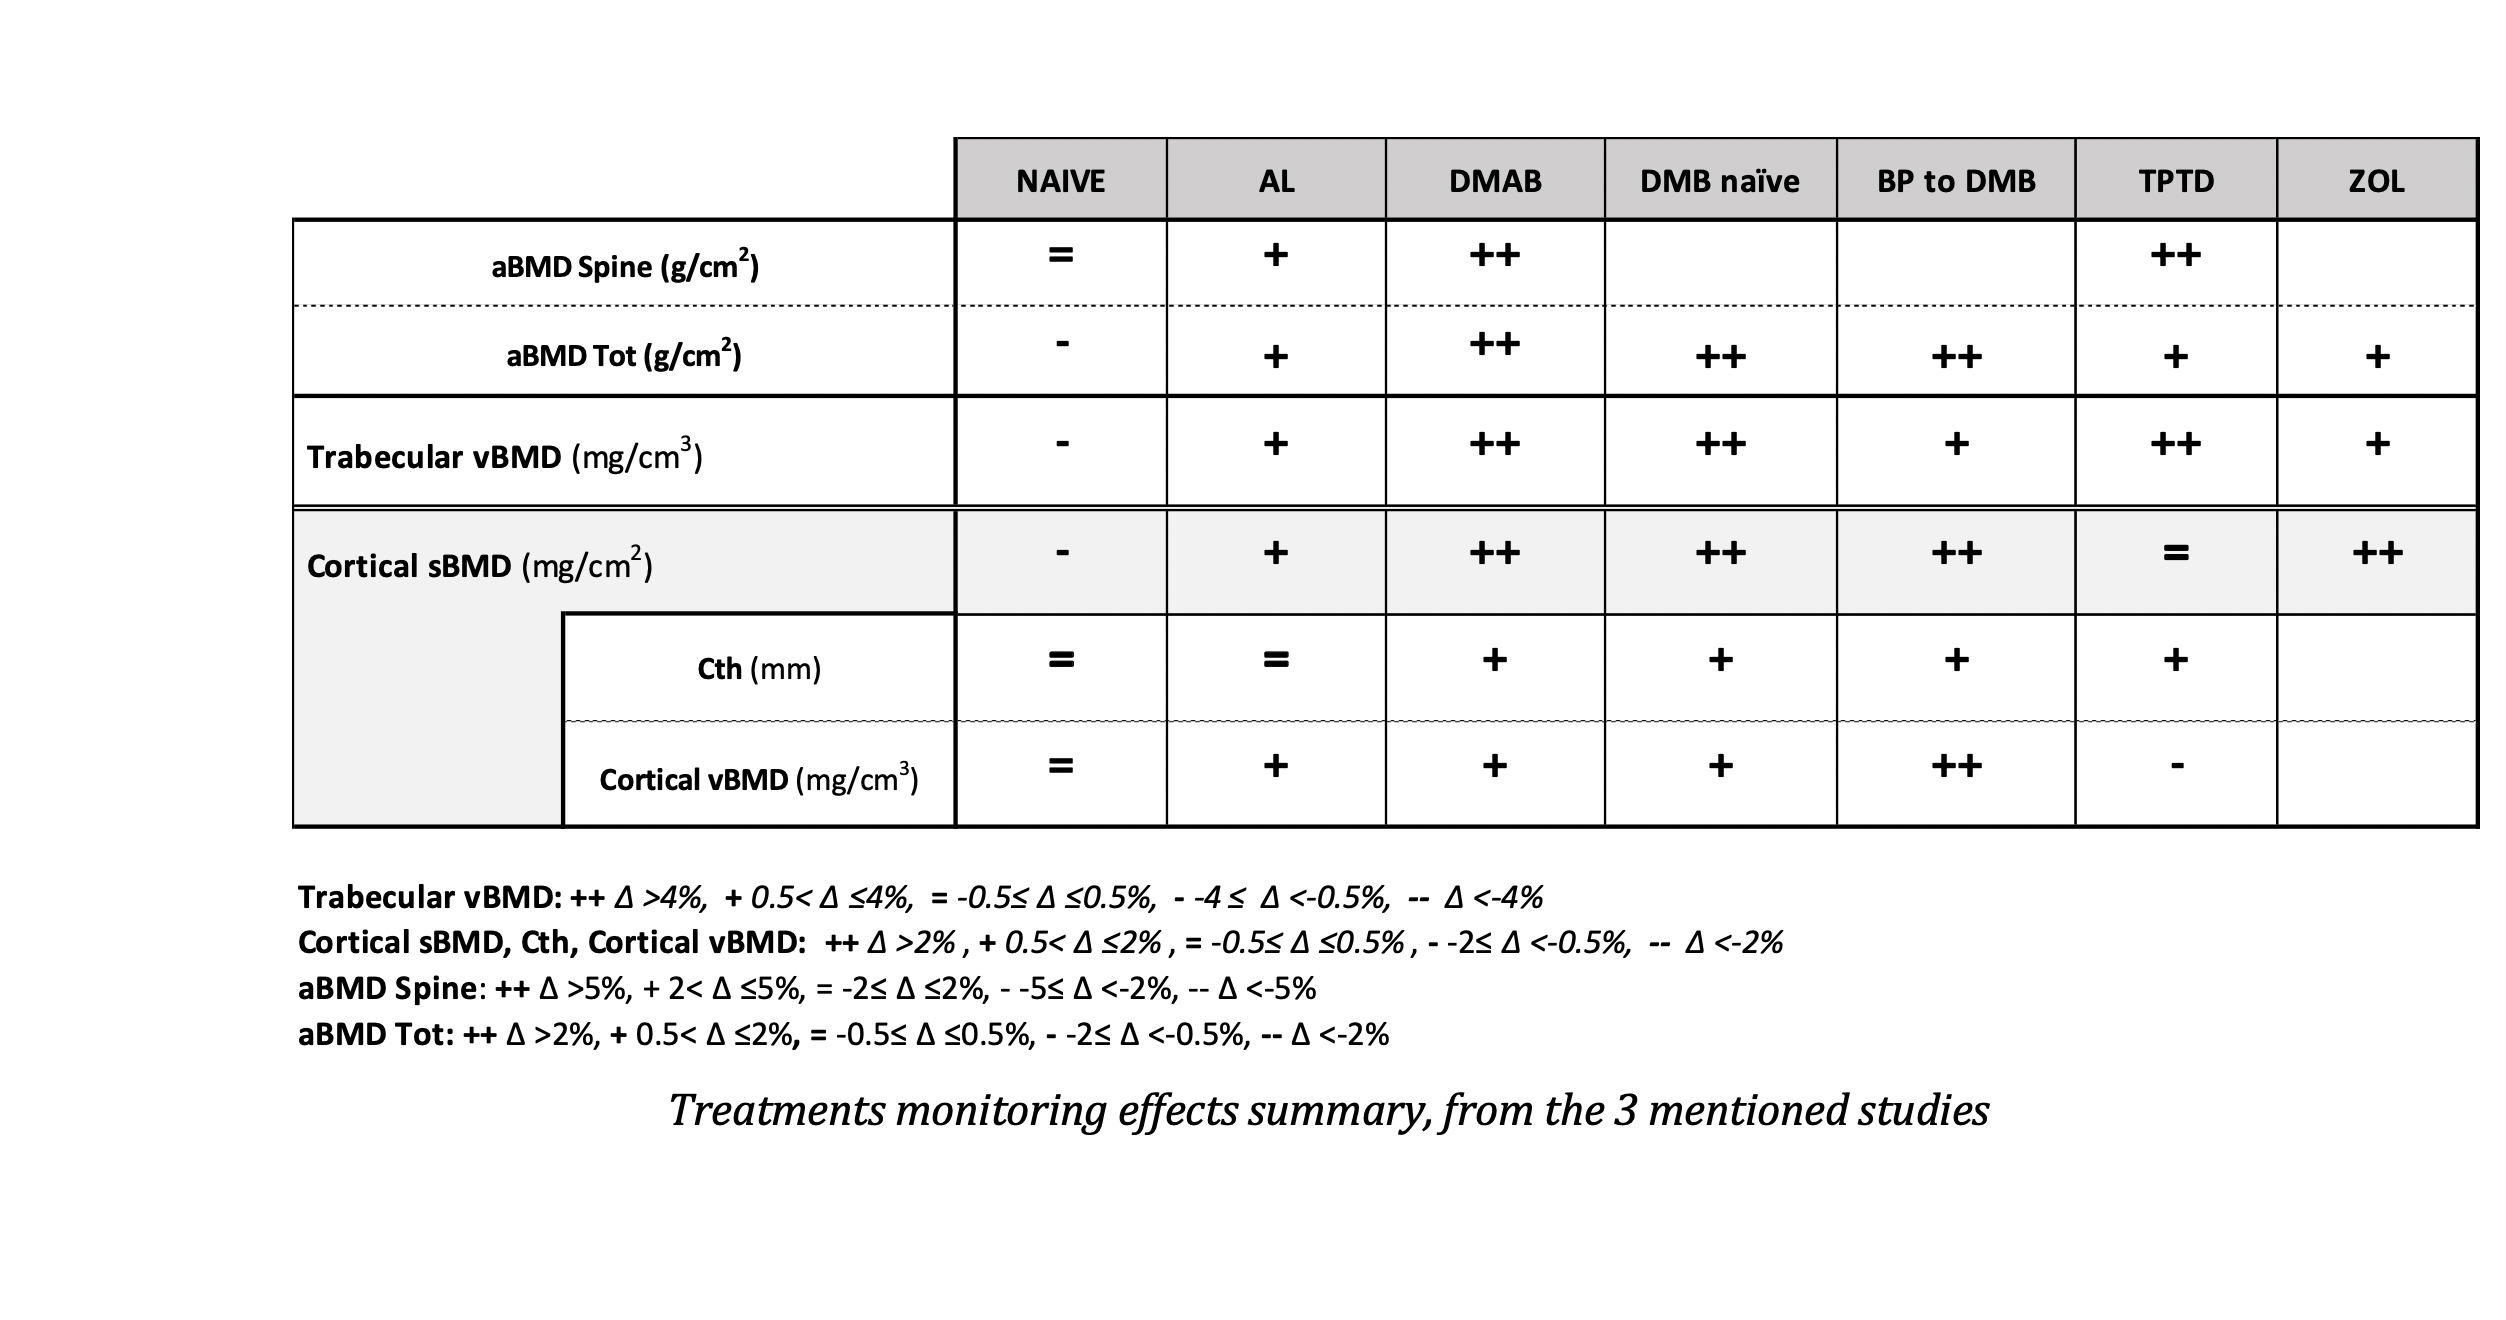 Treatments monitoring effects summary, from the 3 mentioned studies